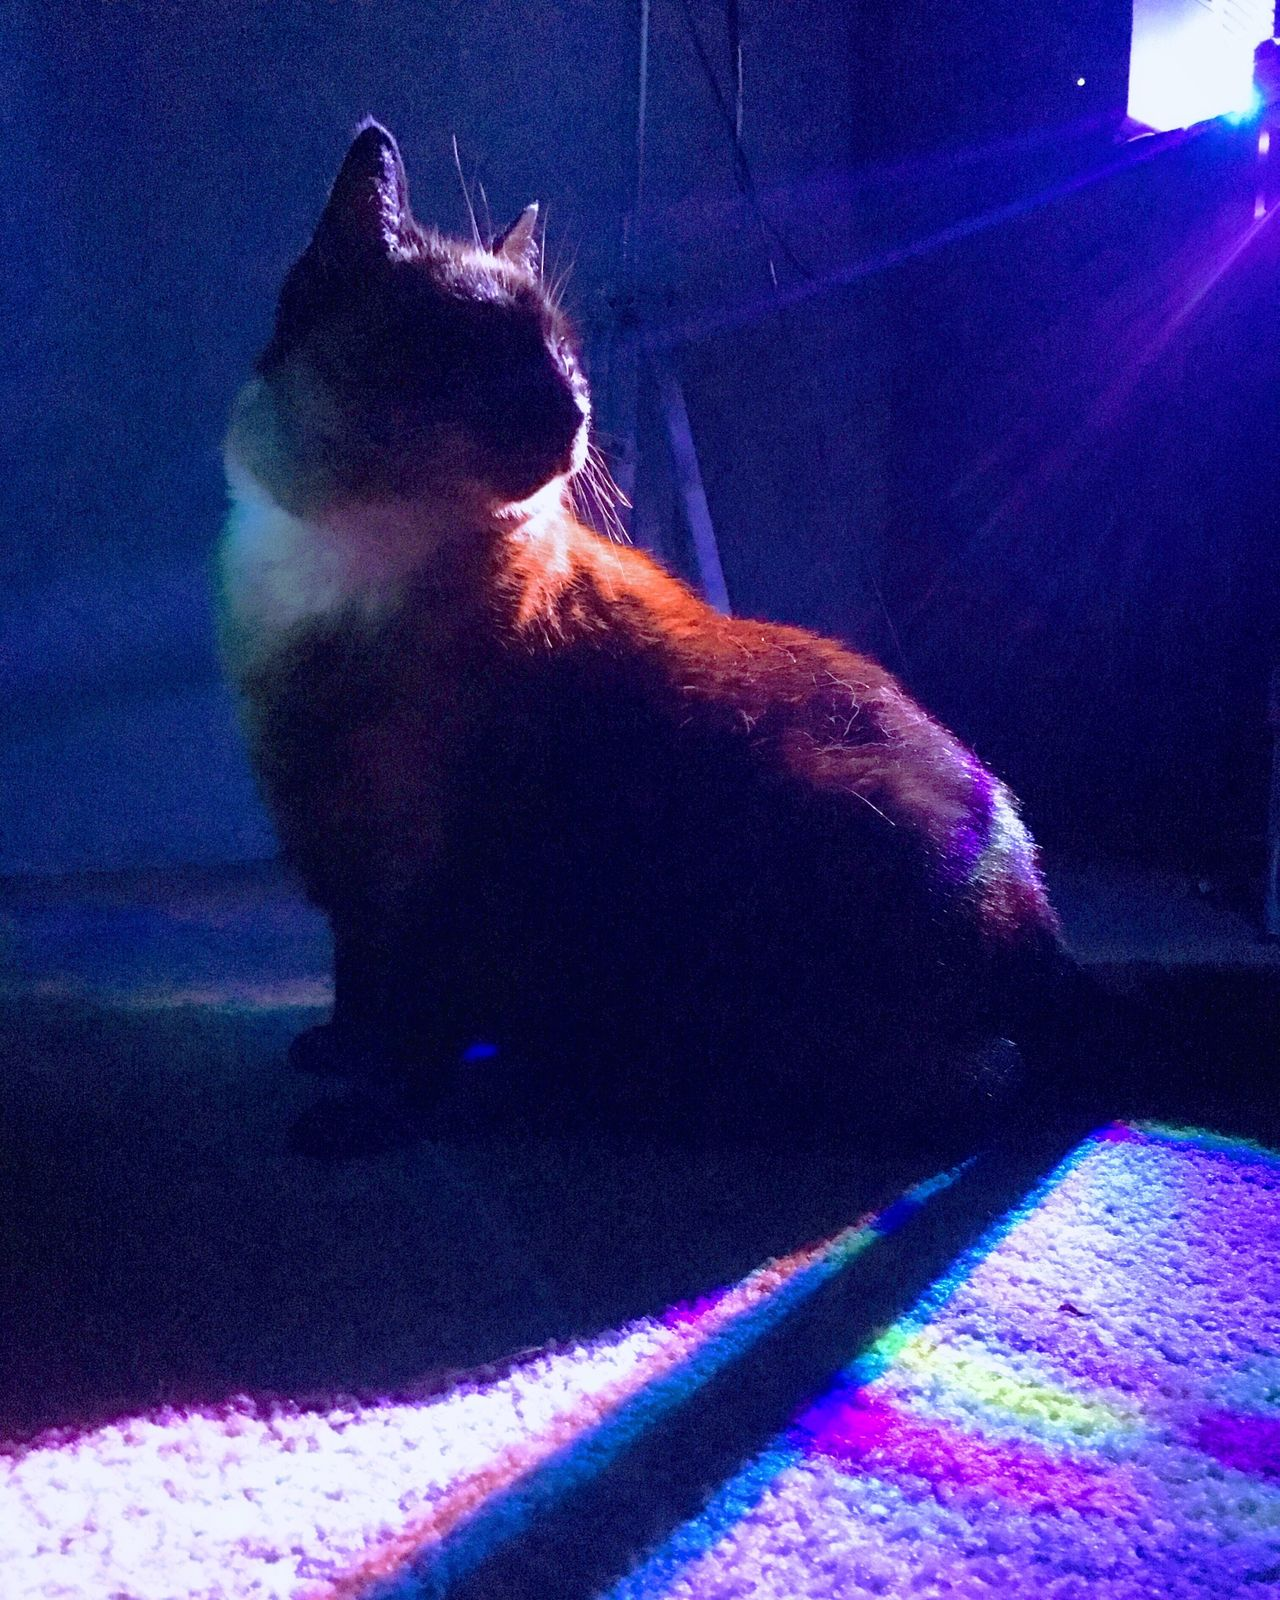 Spotlight Cat Pets Domestic Animals One Animal Domestic Cat Animal Themes Mammal Indoors  No People Feline Night Sitting Illuminated Close-up Limelight Aesthetics Vaporwave Purple